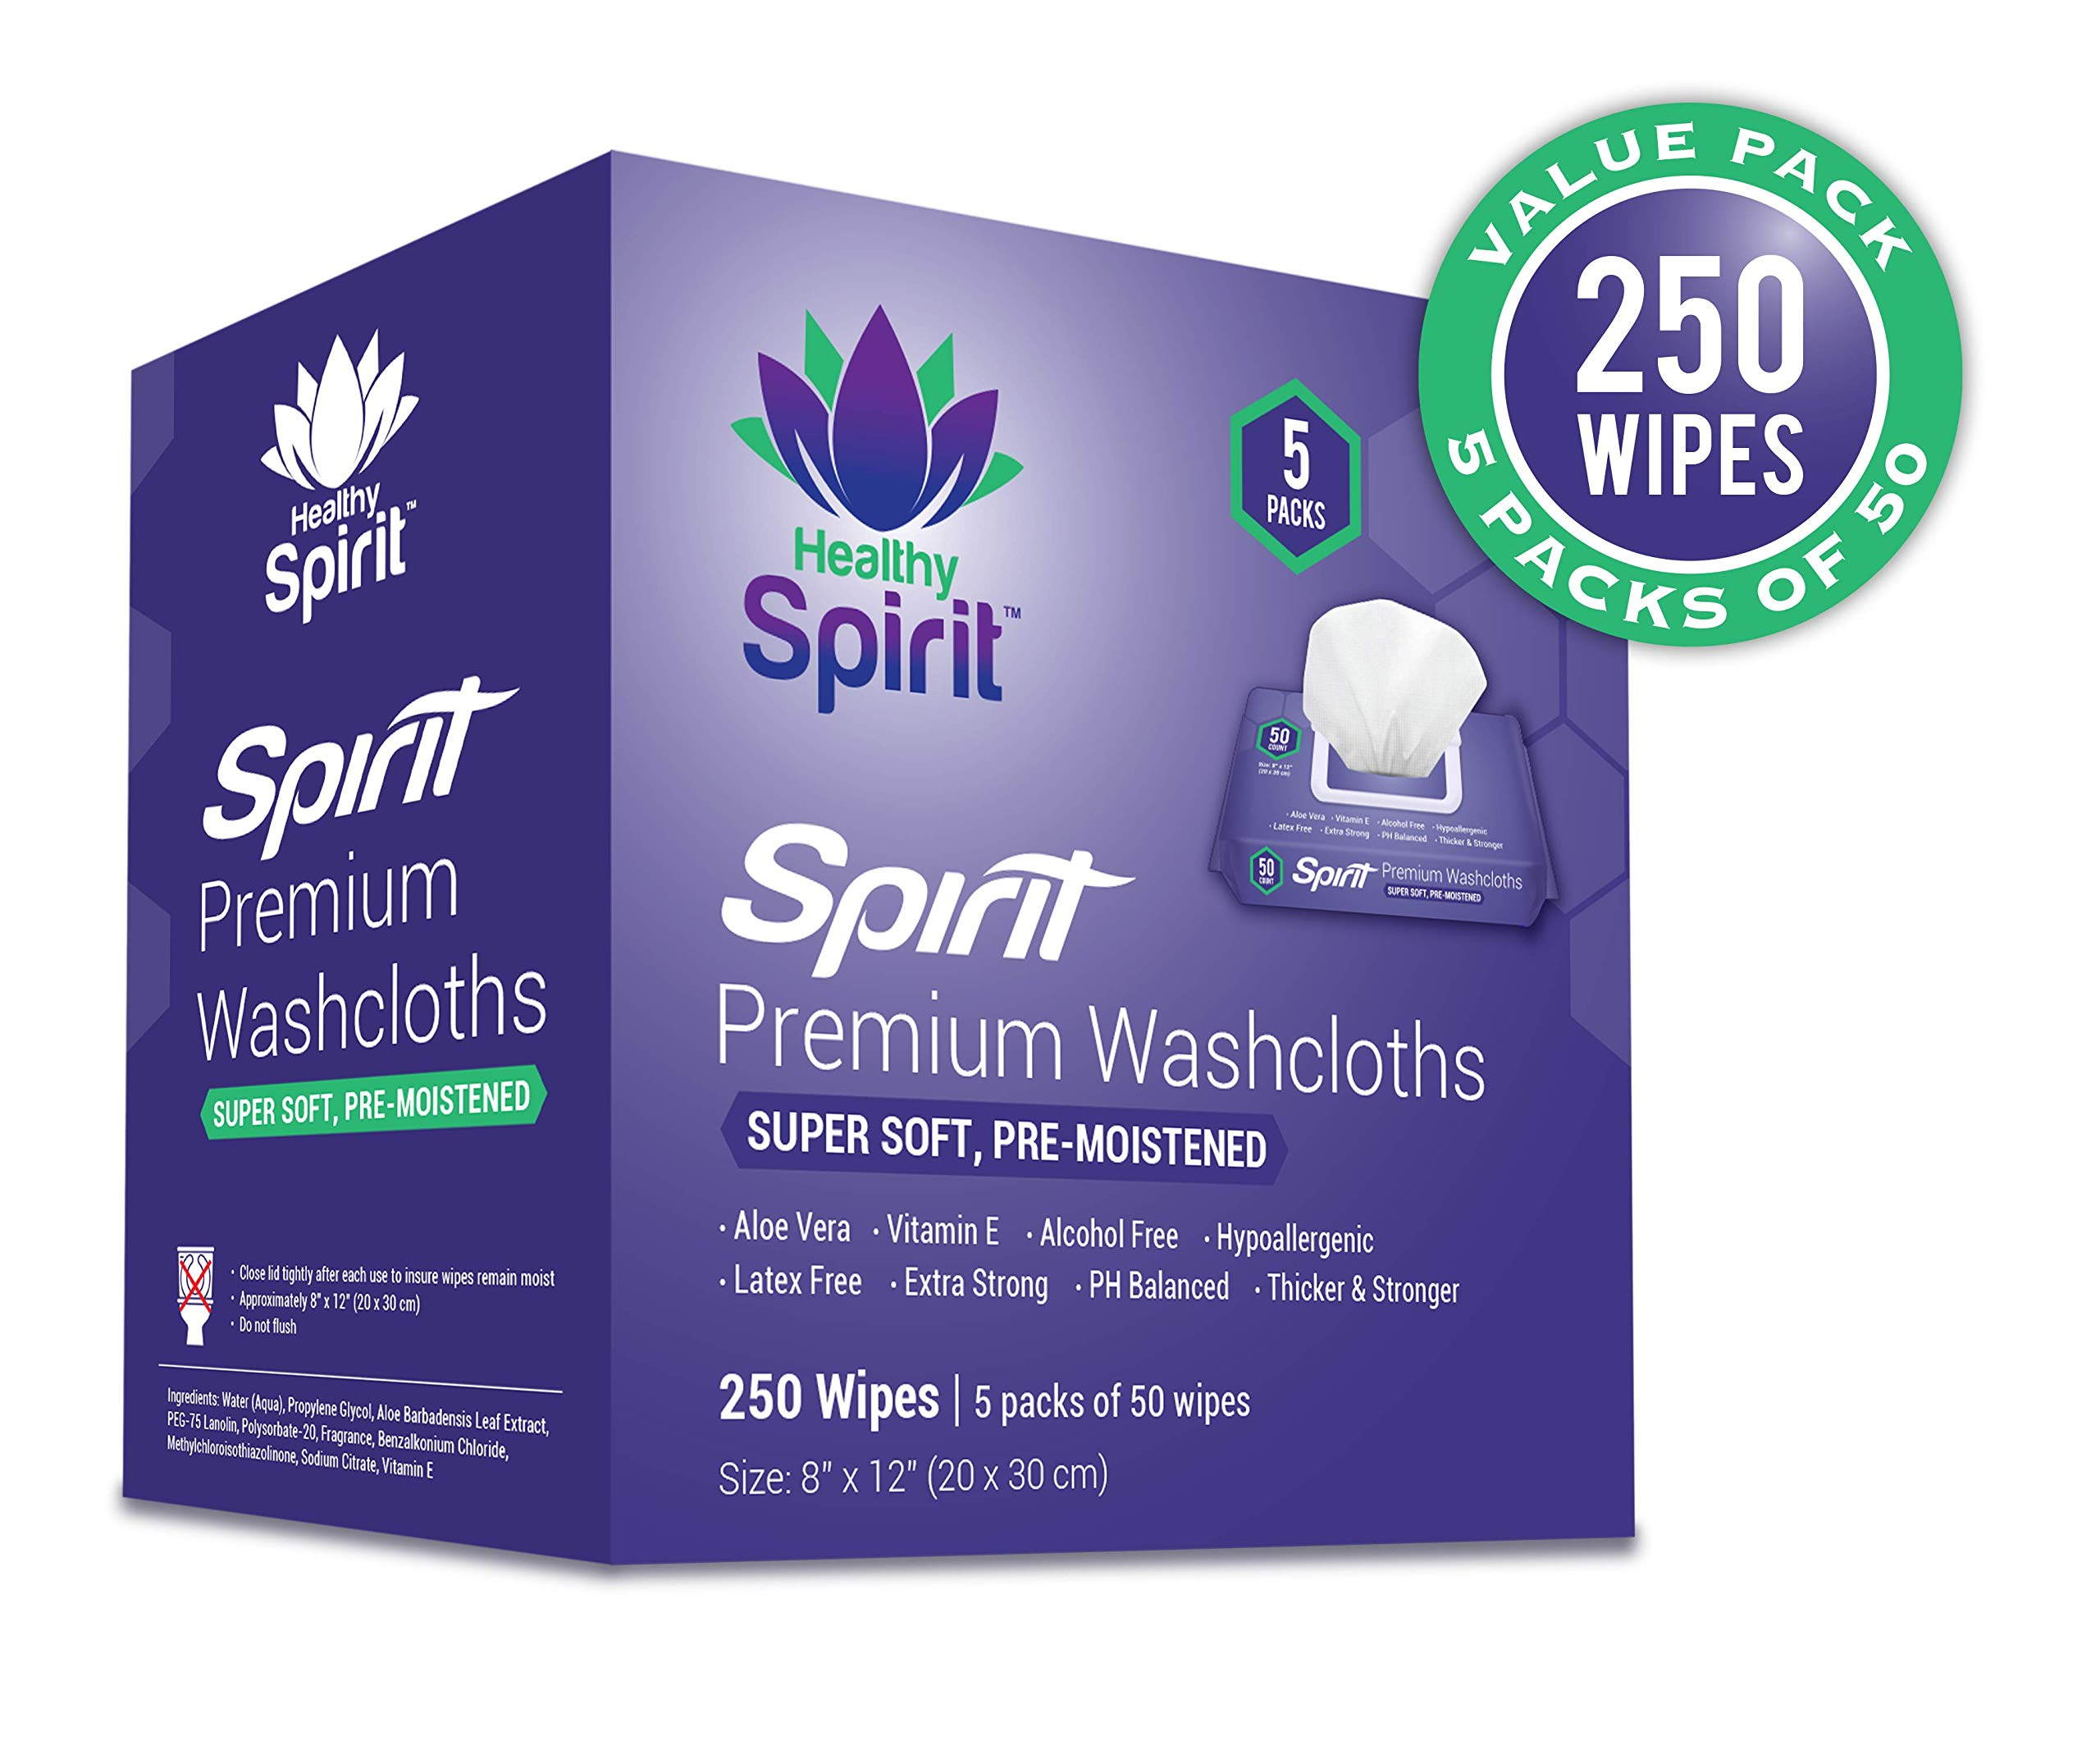 Healthy Spirit Disposable Washcloths 250 Count - Adult Wipes Extra Large, Adult Wipes for Incontinence & Cleansing, 8''x12'', 250 Count, White